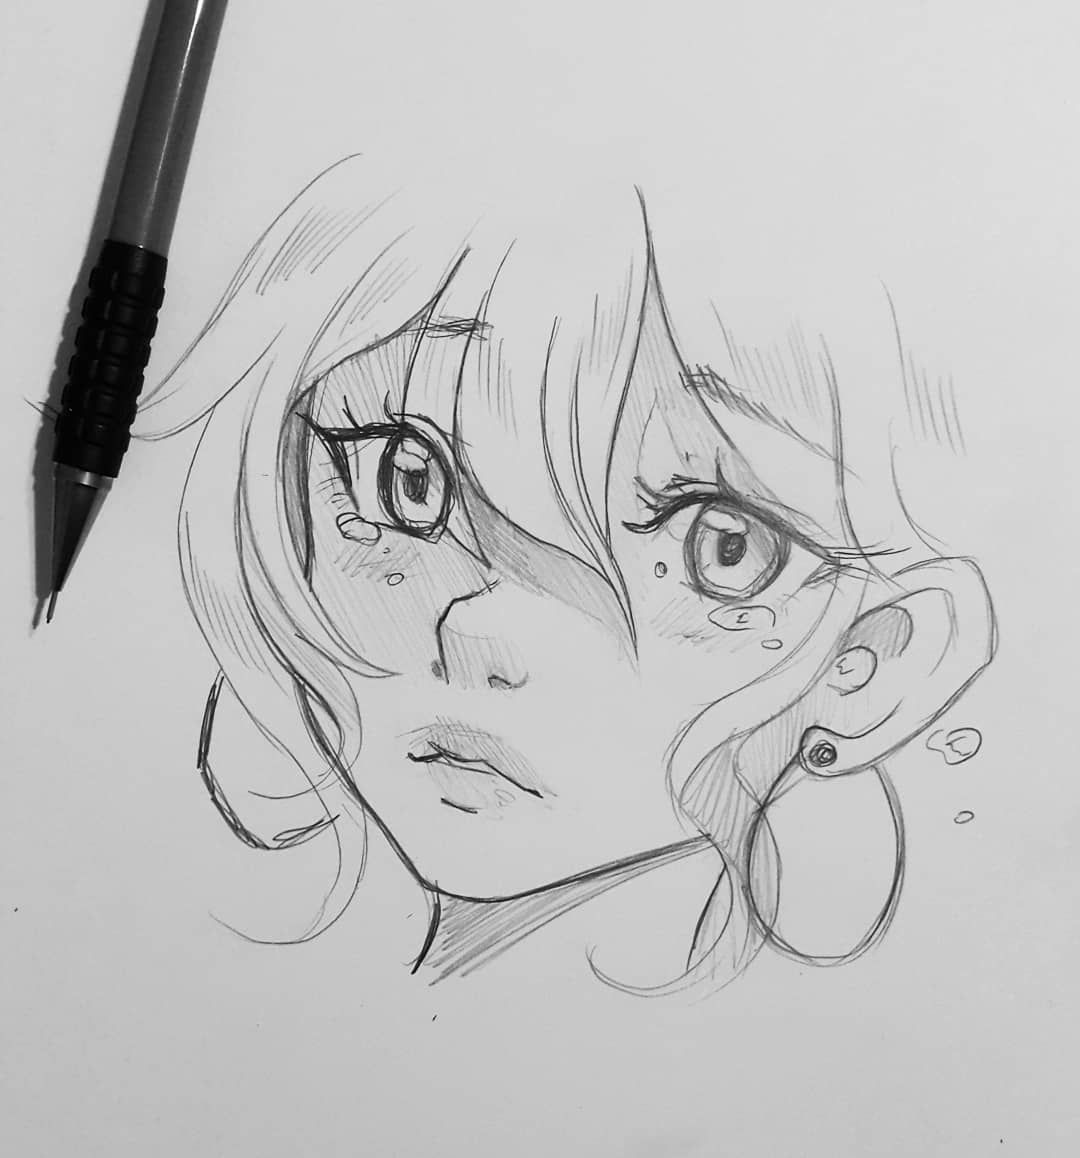 """Photo of ?Lärienne? Karolina Heikura? on Instagram: """"#wip Wind. Where are you from? Is it windy there at times? — Larienne.deviantart.com — #larienne #manga #anime #sketch #doodle #drawing…"""""""